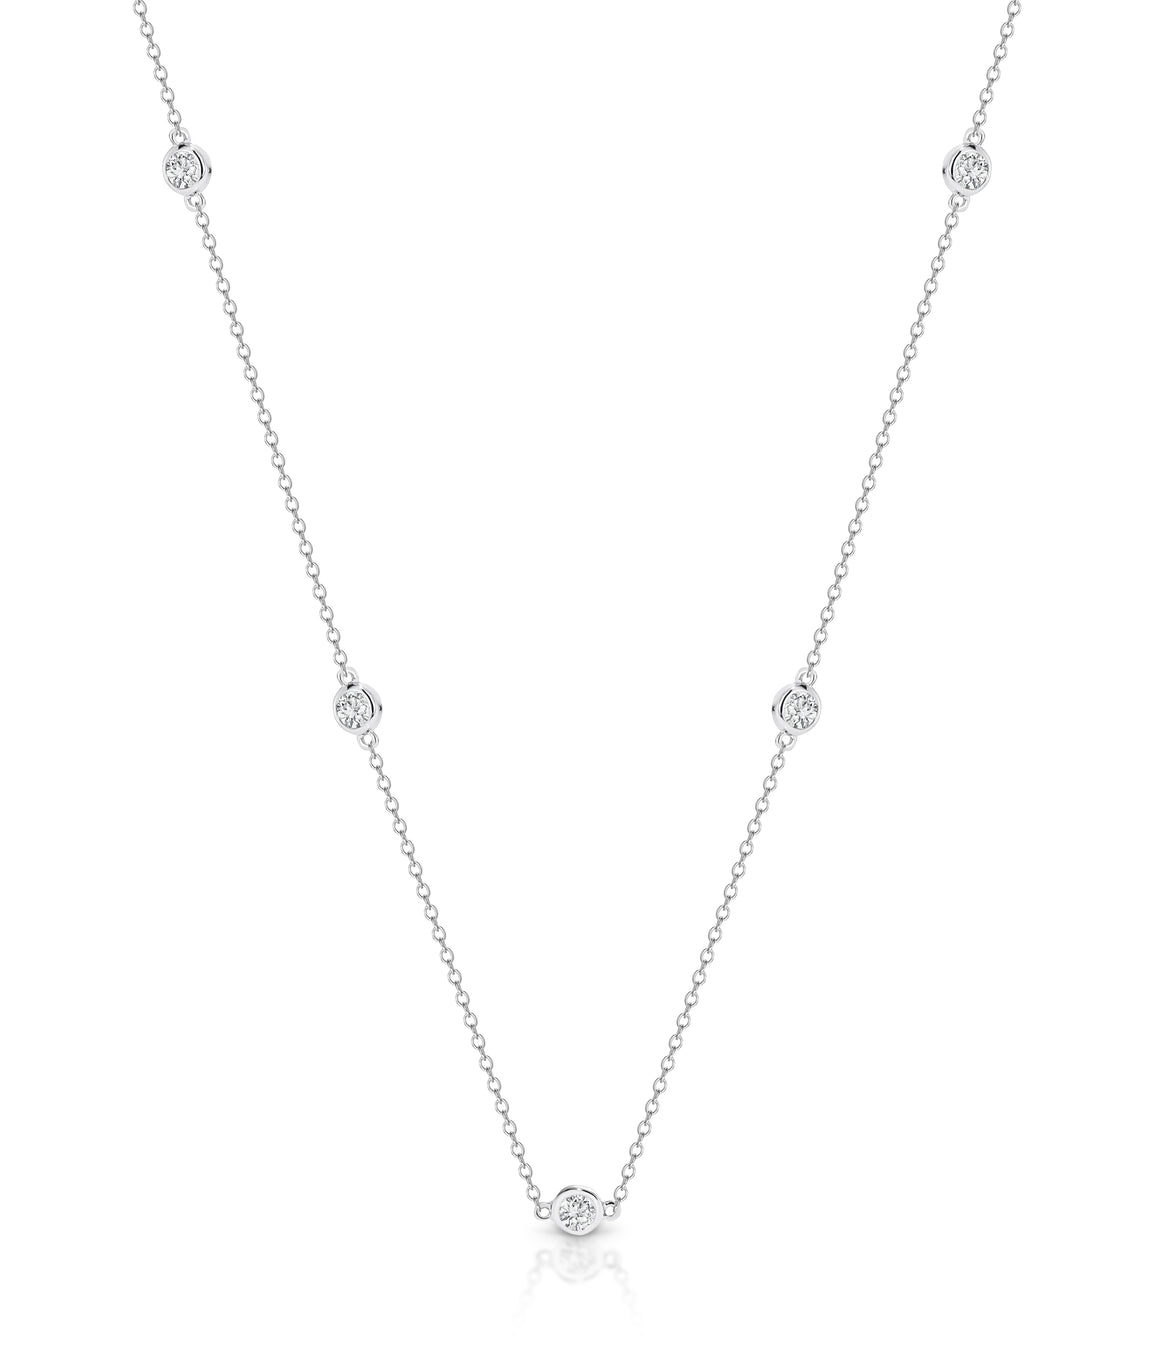 Diamond 'Marchesa' Necklace (45cm) - Gemma Stone Jewellery